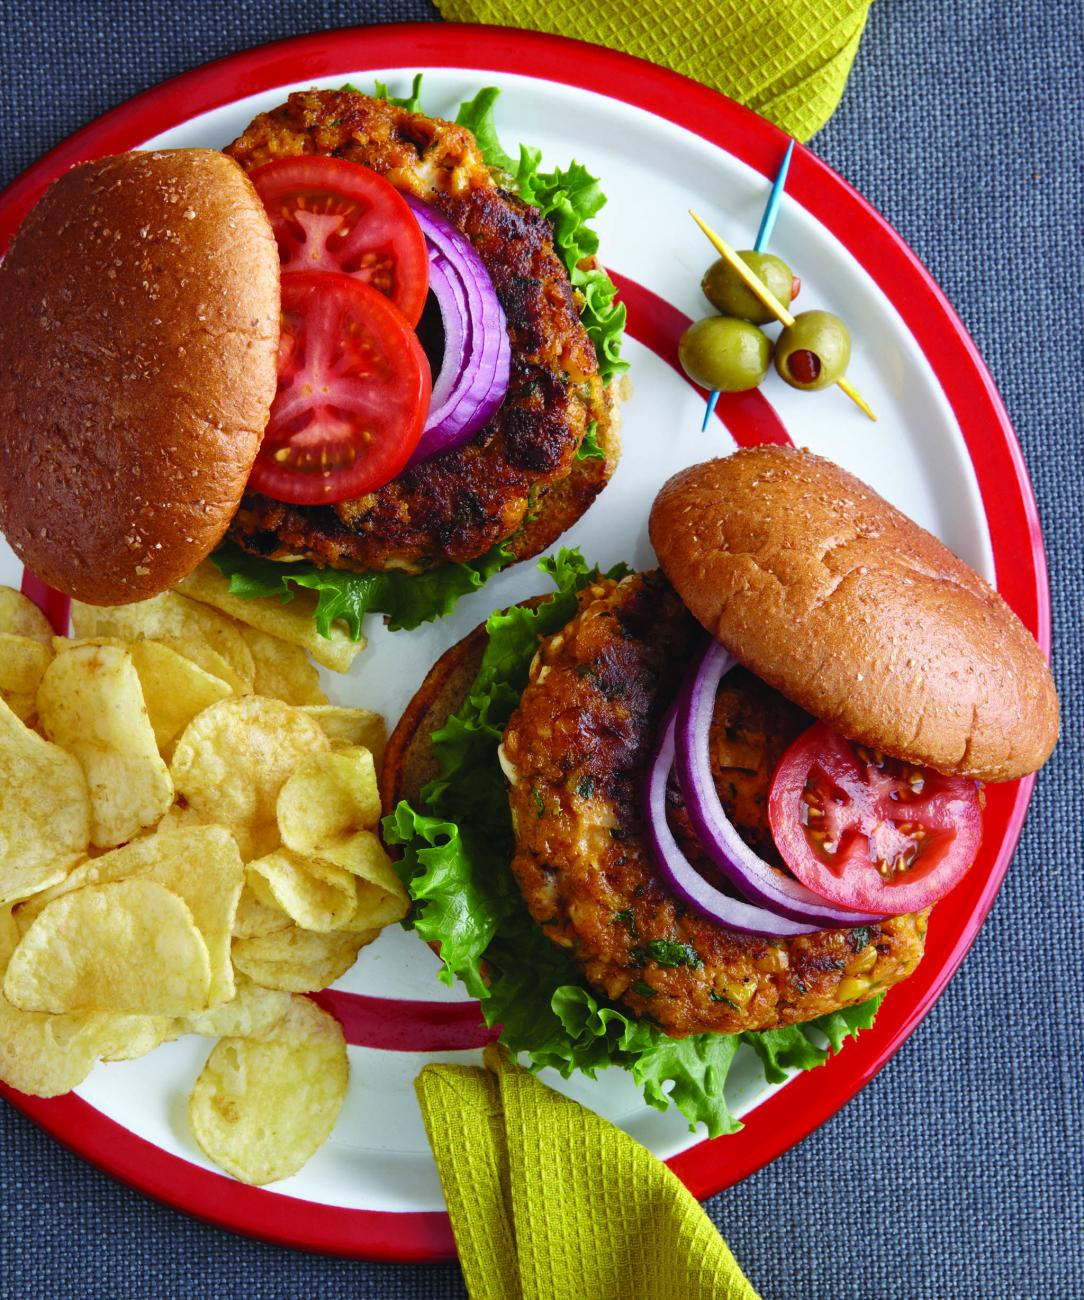 Recipe for Southwestern Pumpkin Burgers